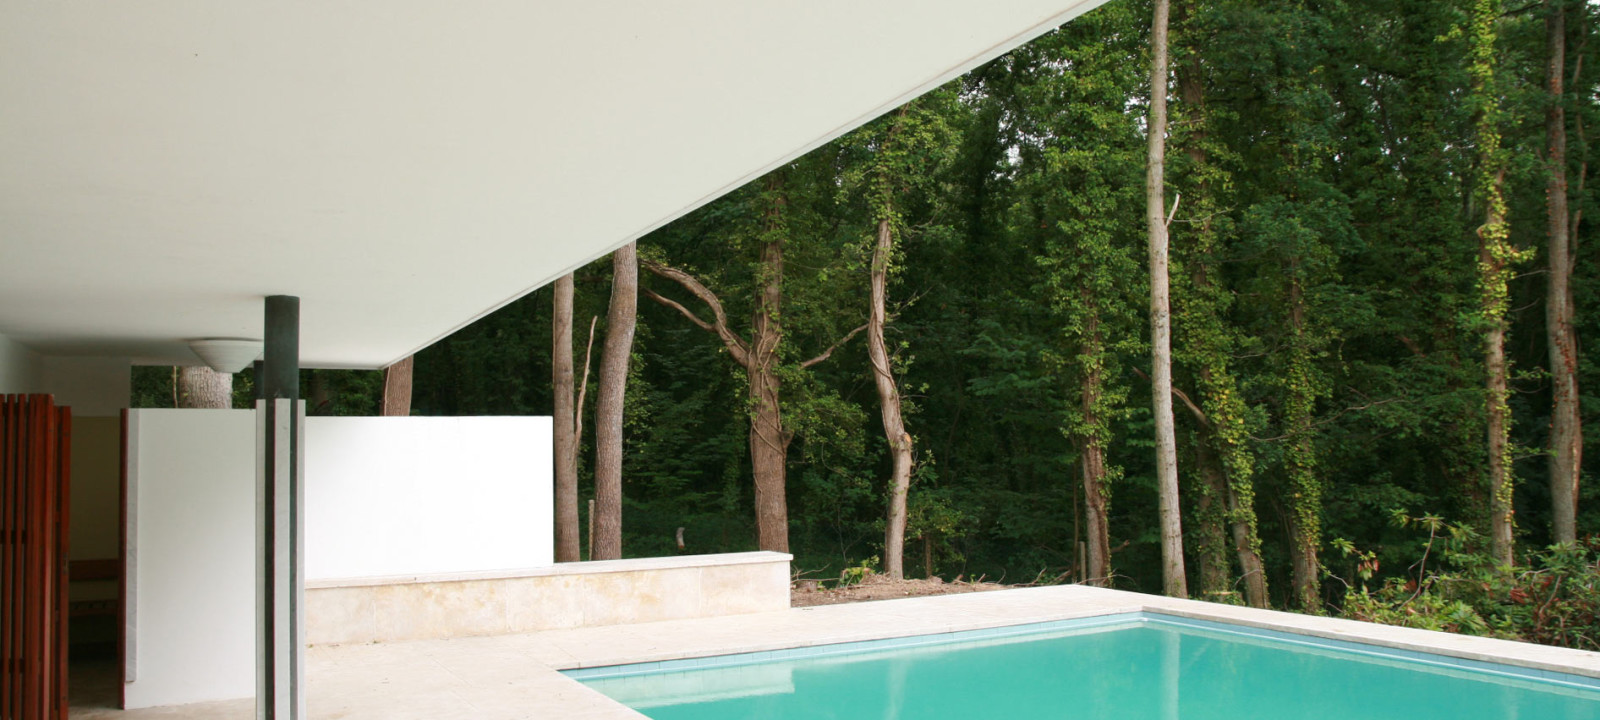 The Alvar Aalto Swimming Pool Maison Louis Carr 233 Chiara Colombini